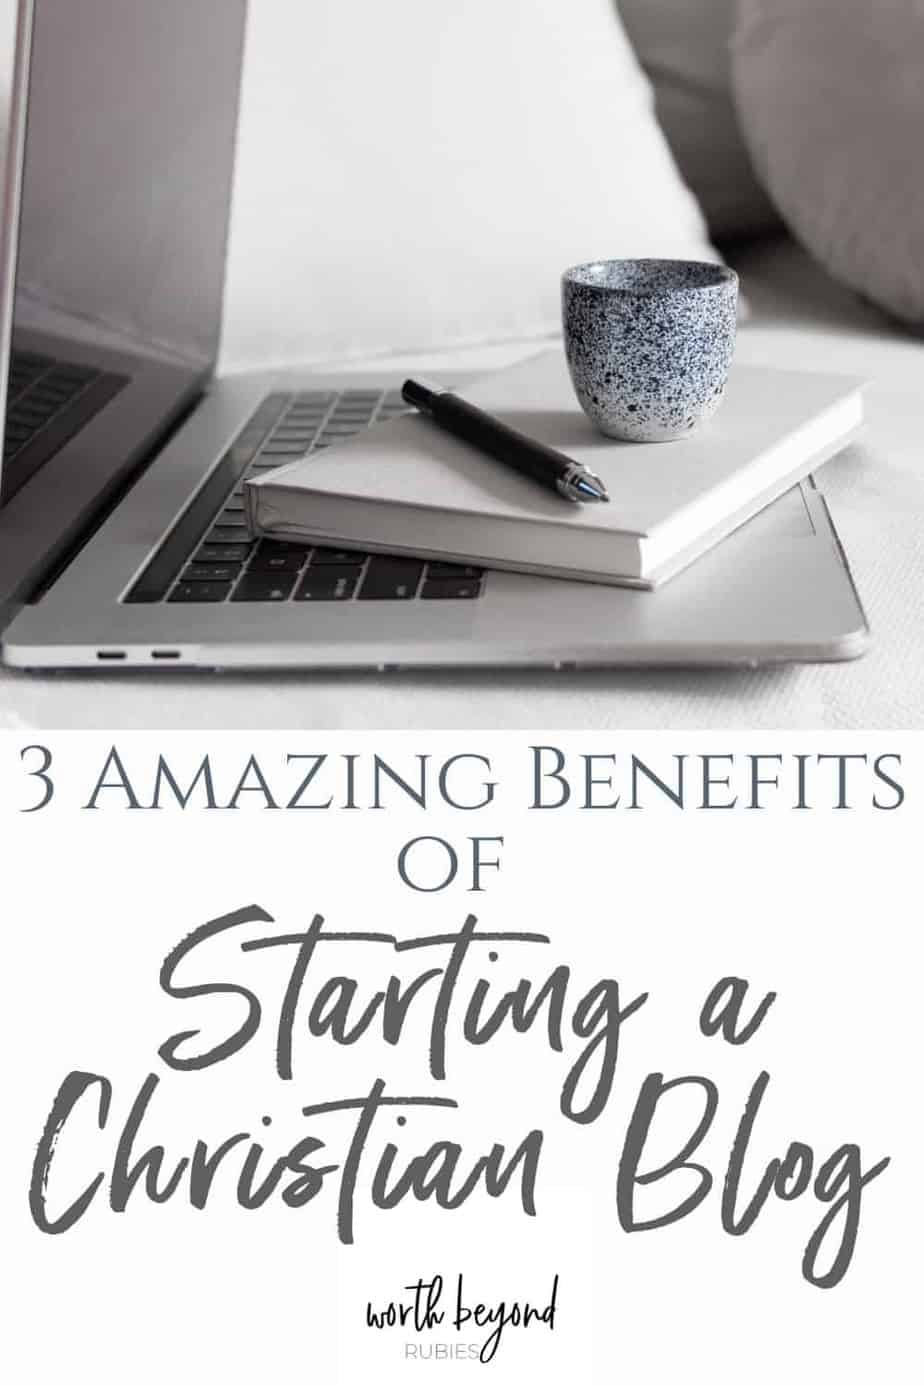 Laptop, book and coffee cup on couch - Text that says 3 Amazing Benefits of Starting a Christian Blog